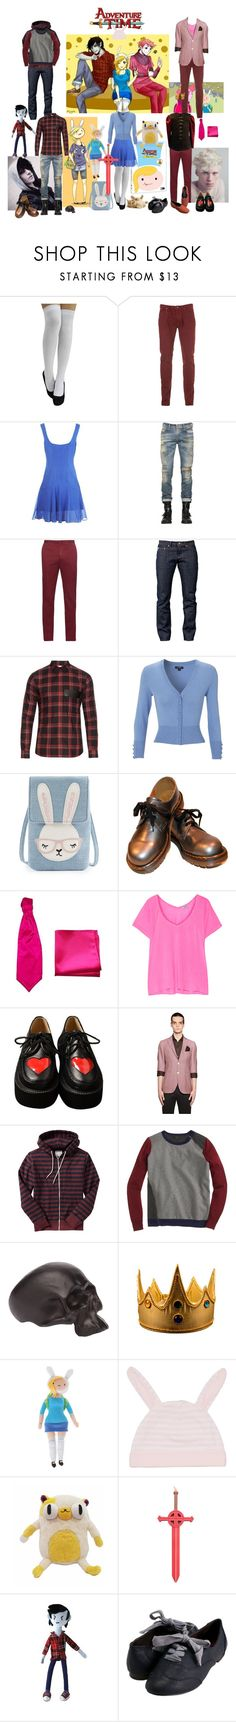 """""""Adventure Time OT3"""" by verysmallgoddess ❤ liked on Polyvore featuring Twenty8Twelve, Diesel, Incotex, Naked & Famous, Givenchy, Hobbs, Splendid, Etro, Old Navy and J.Crew"""